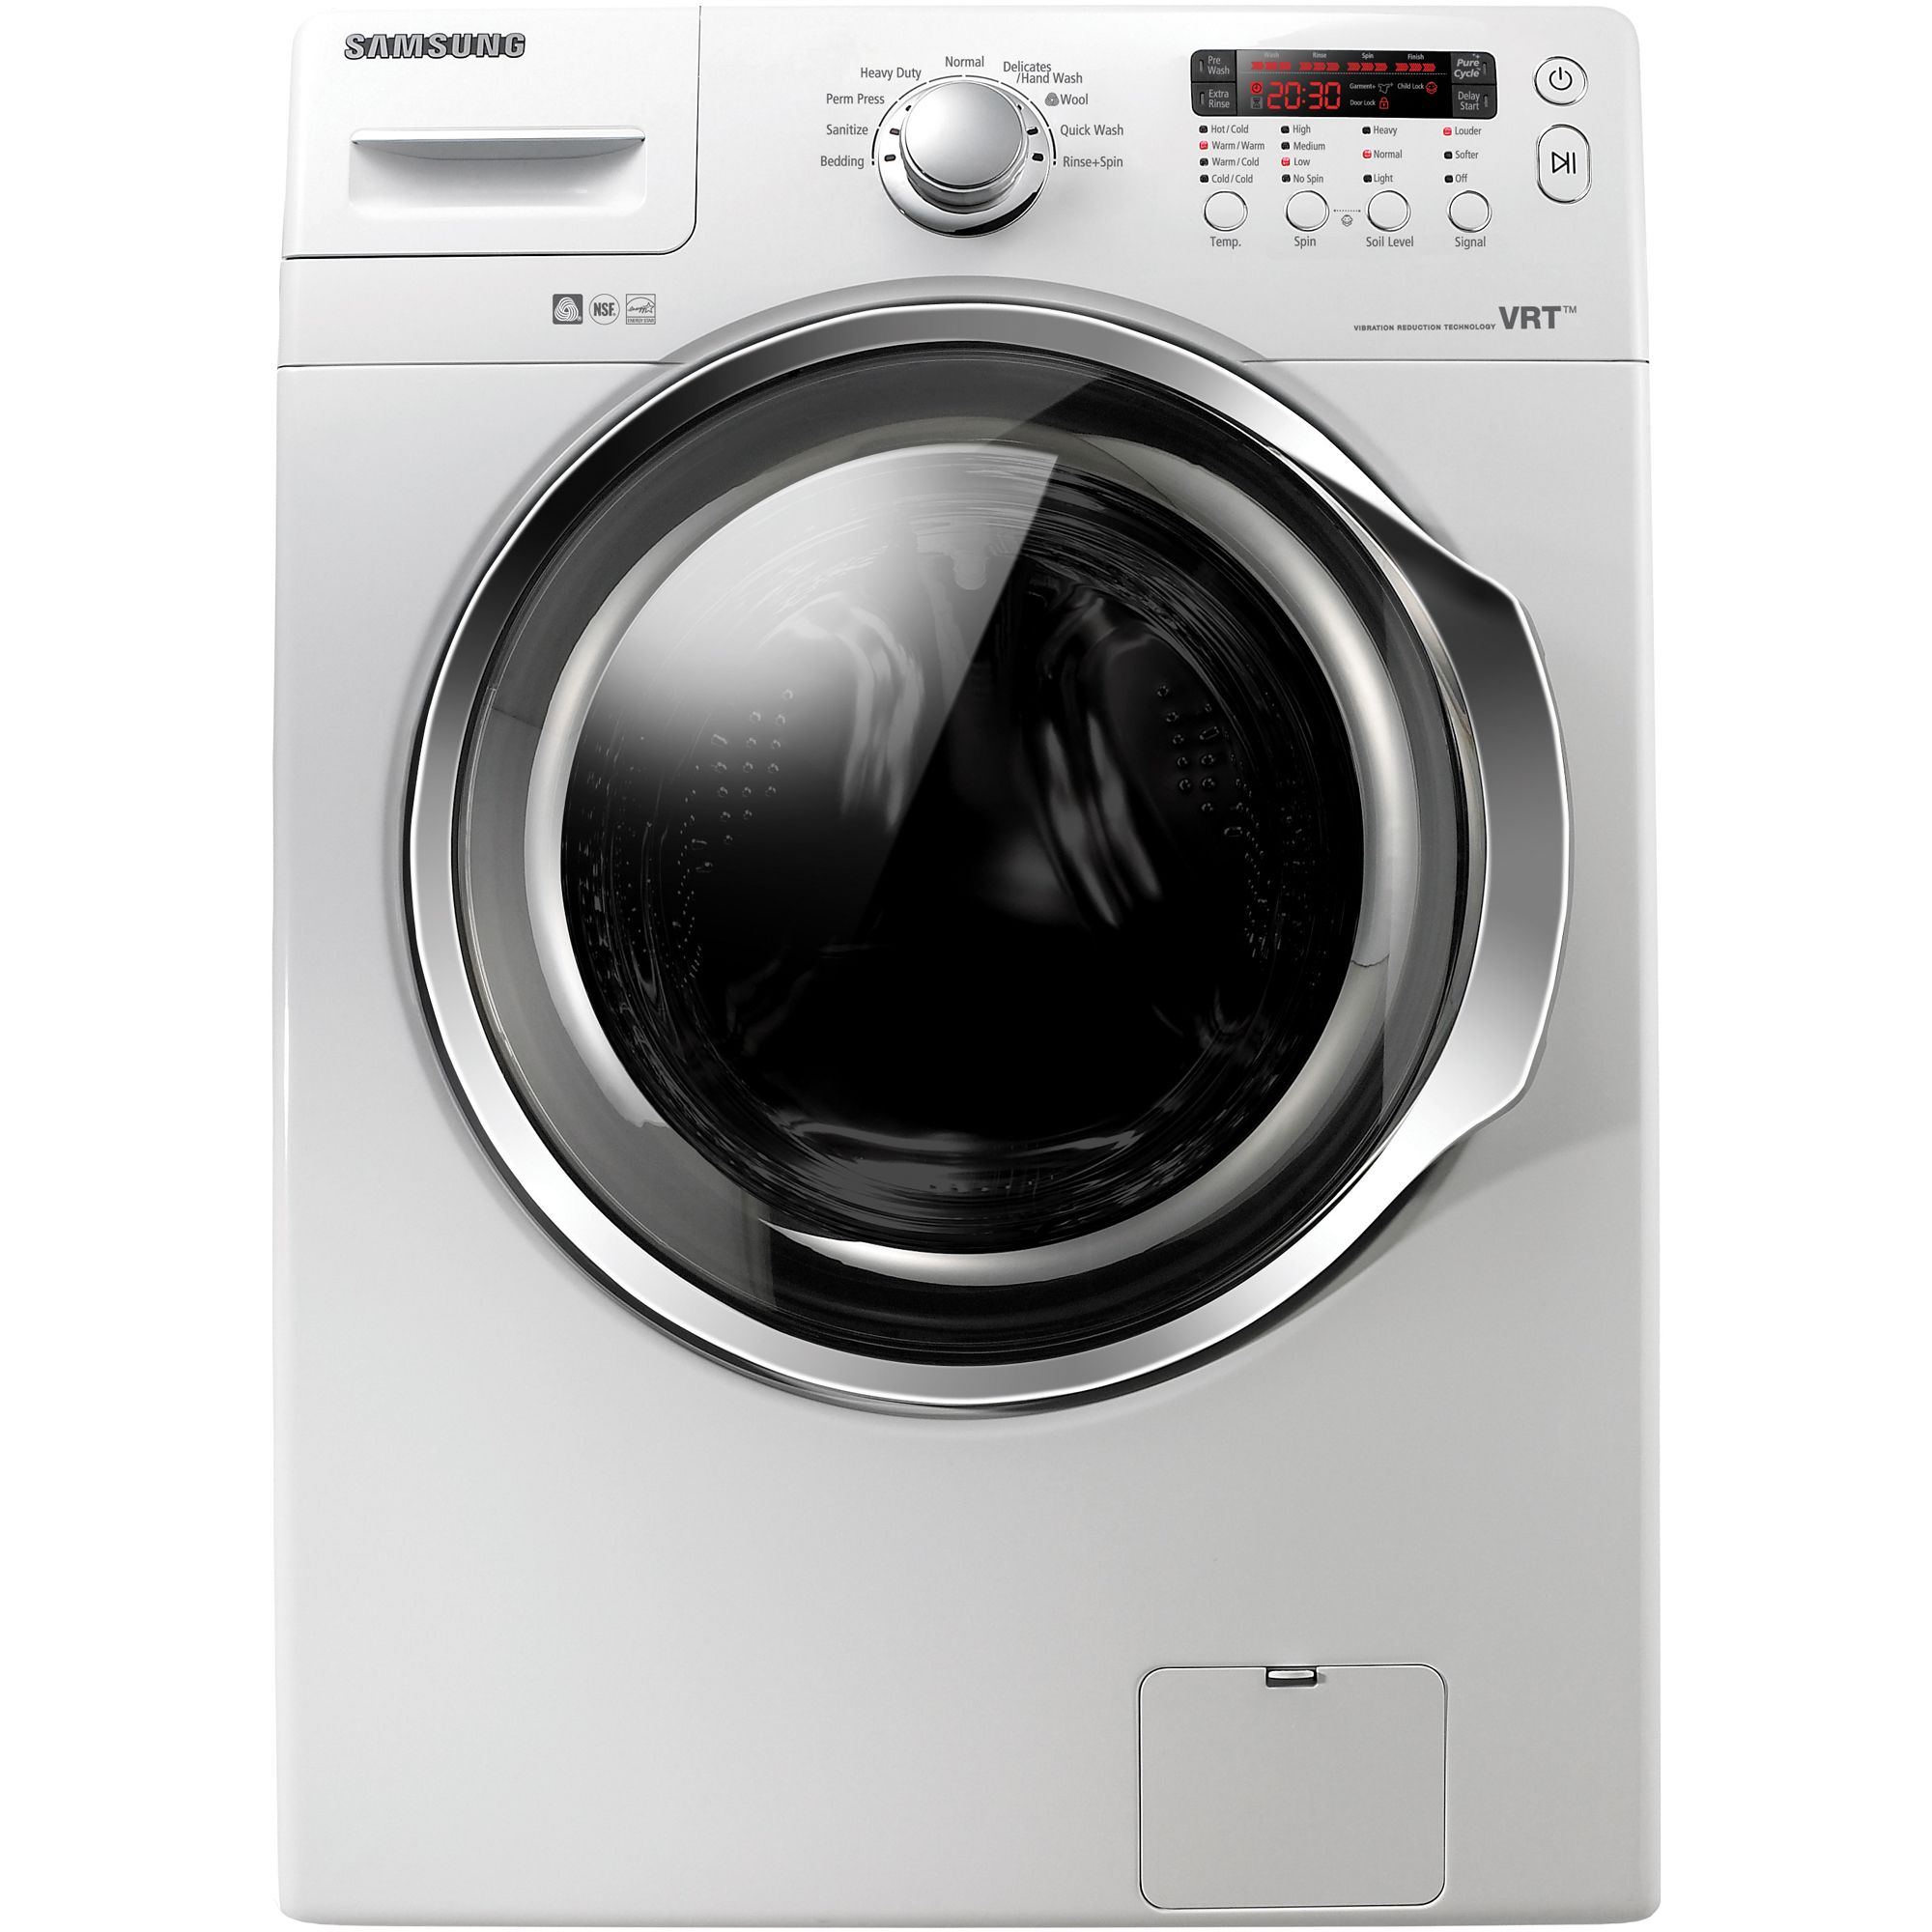 Samsung WF405ATPA 4.0 Cu. Ft. Front Load Washer